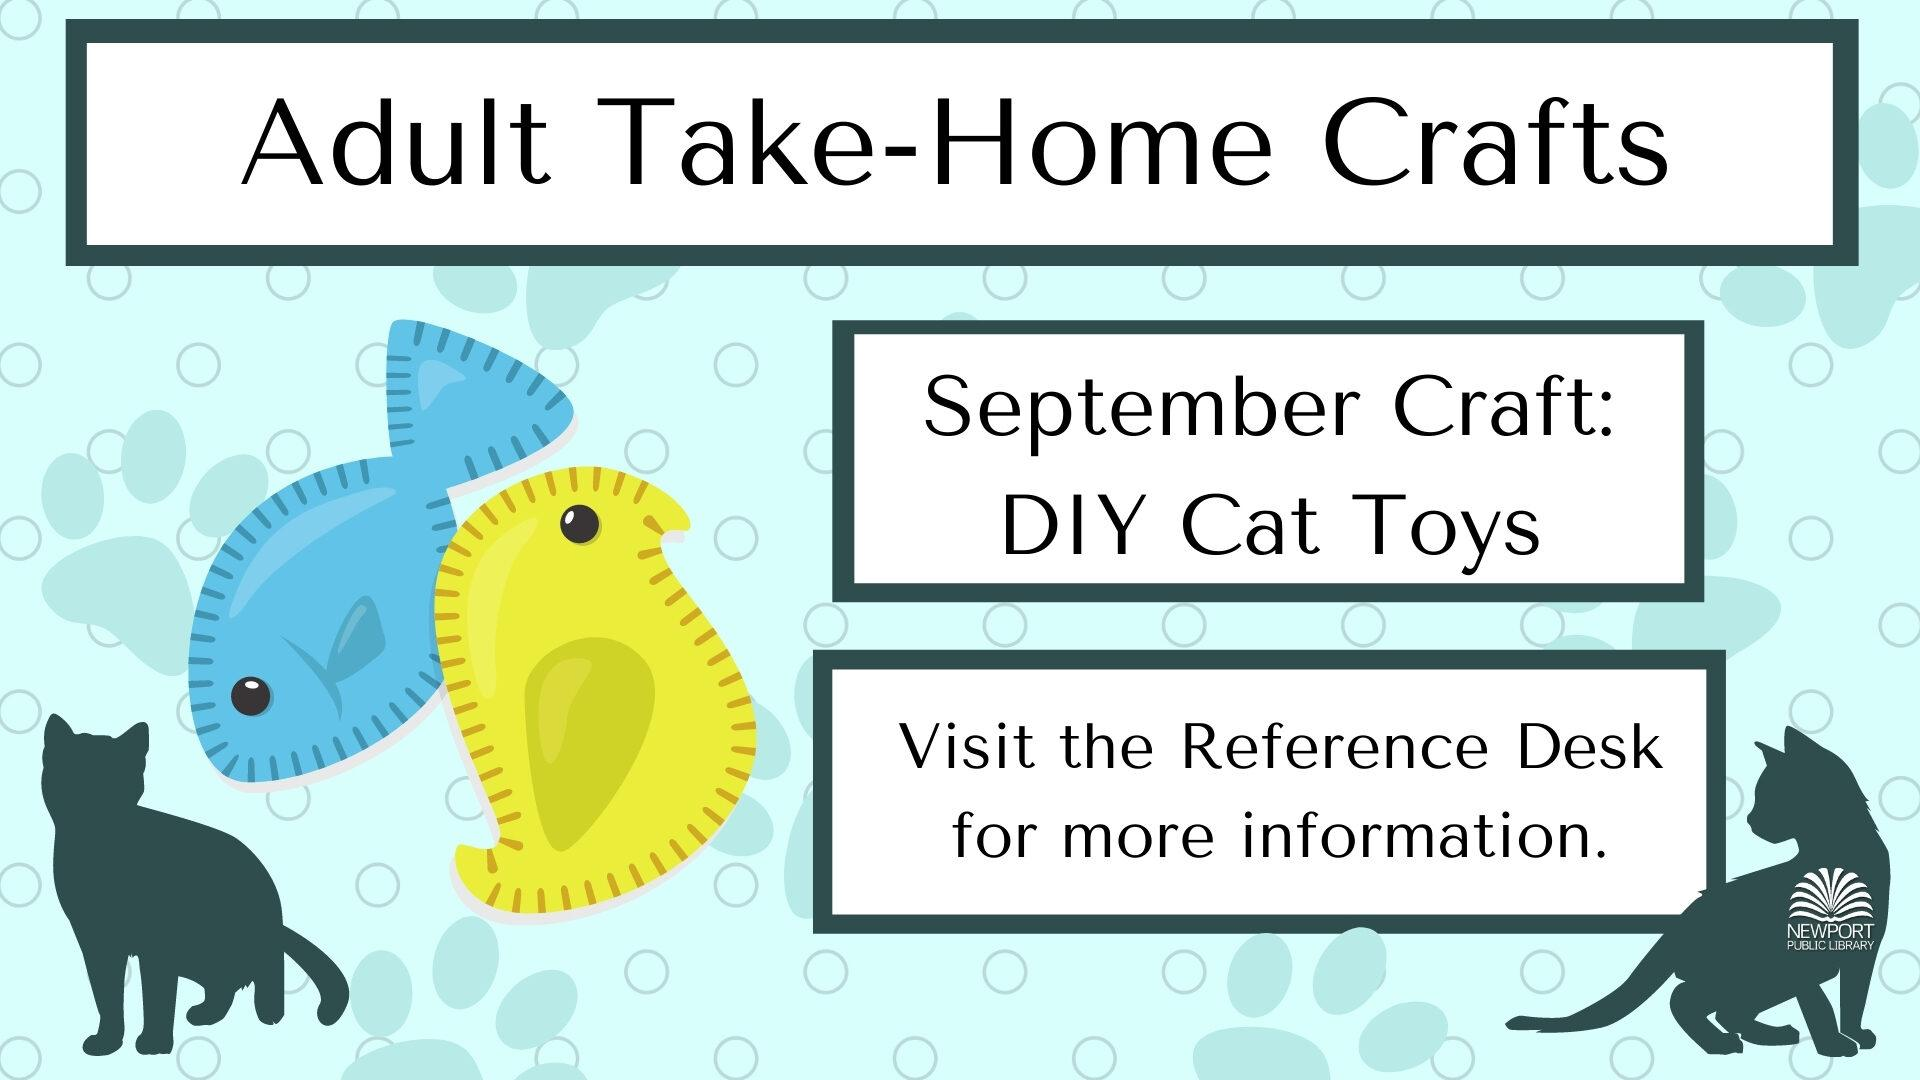 Adult Take-Home Crafts